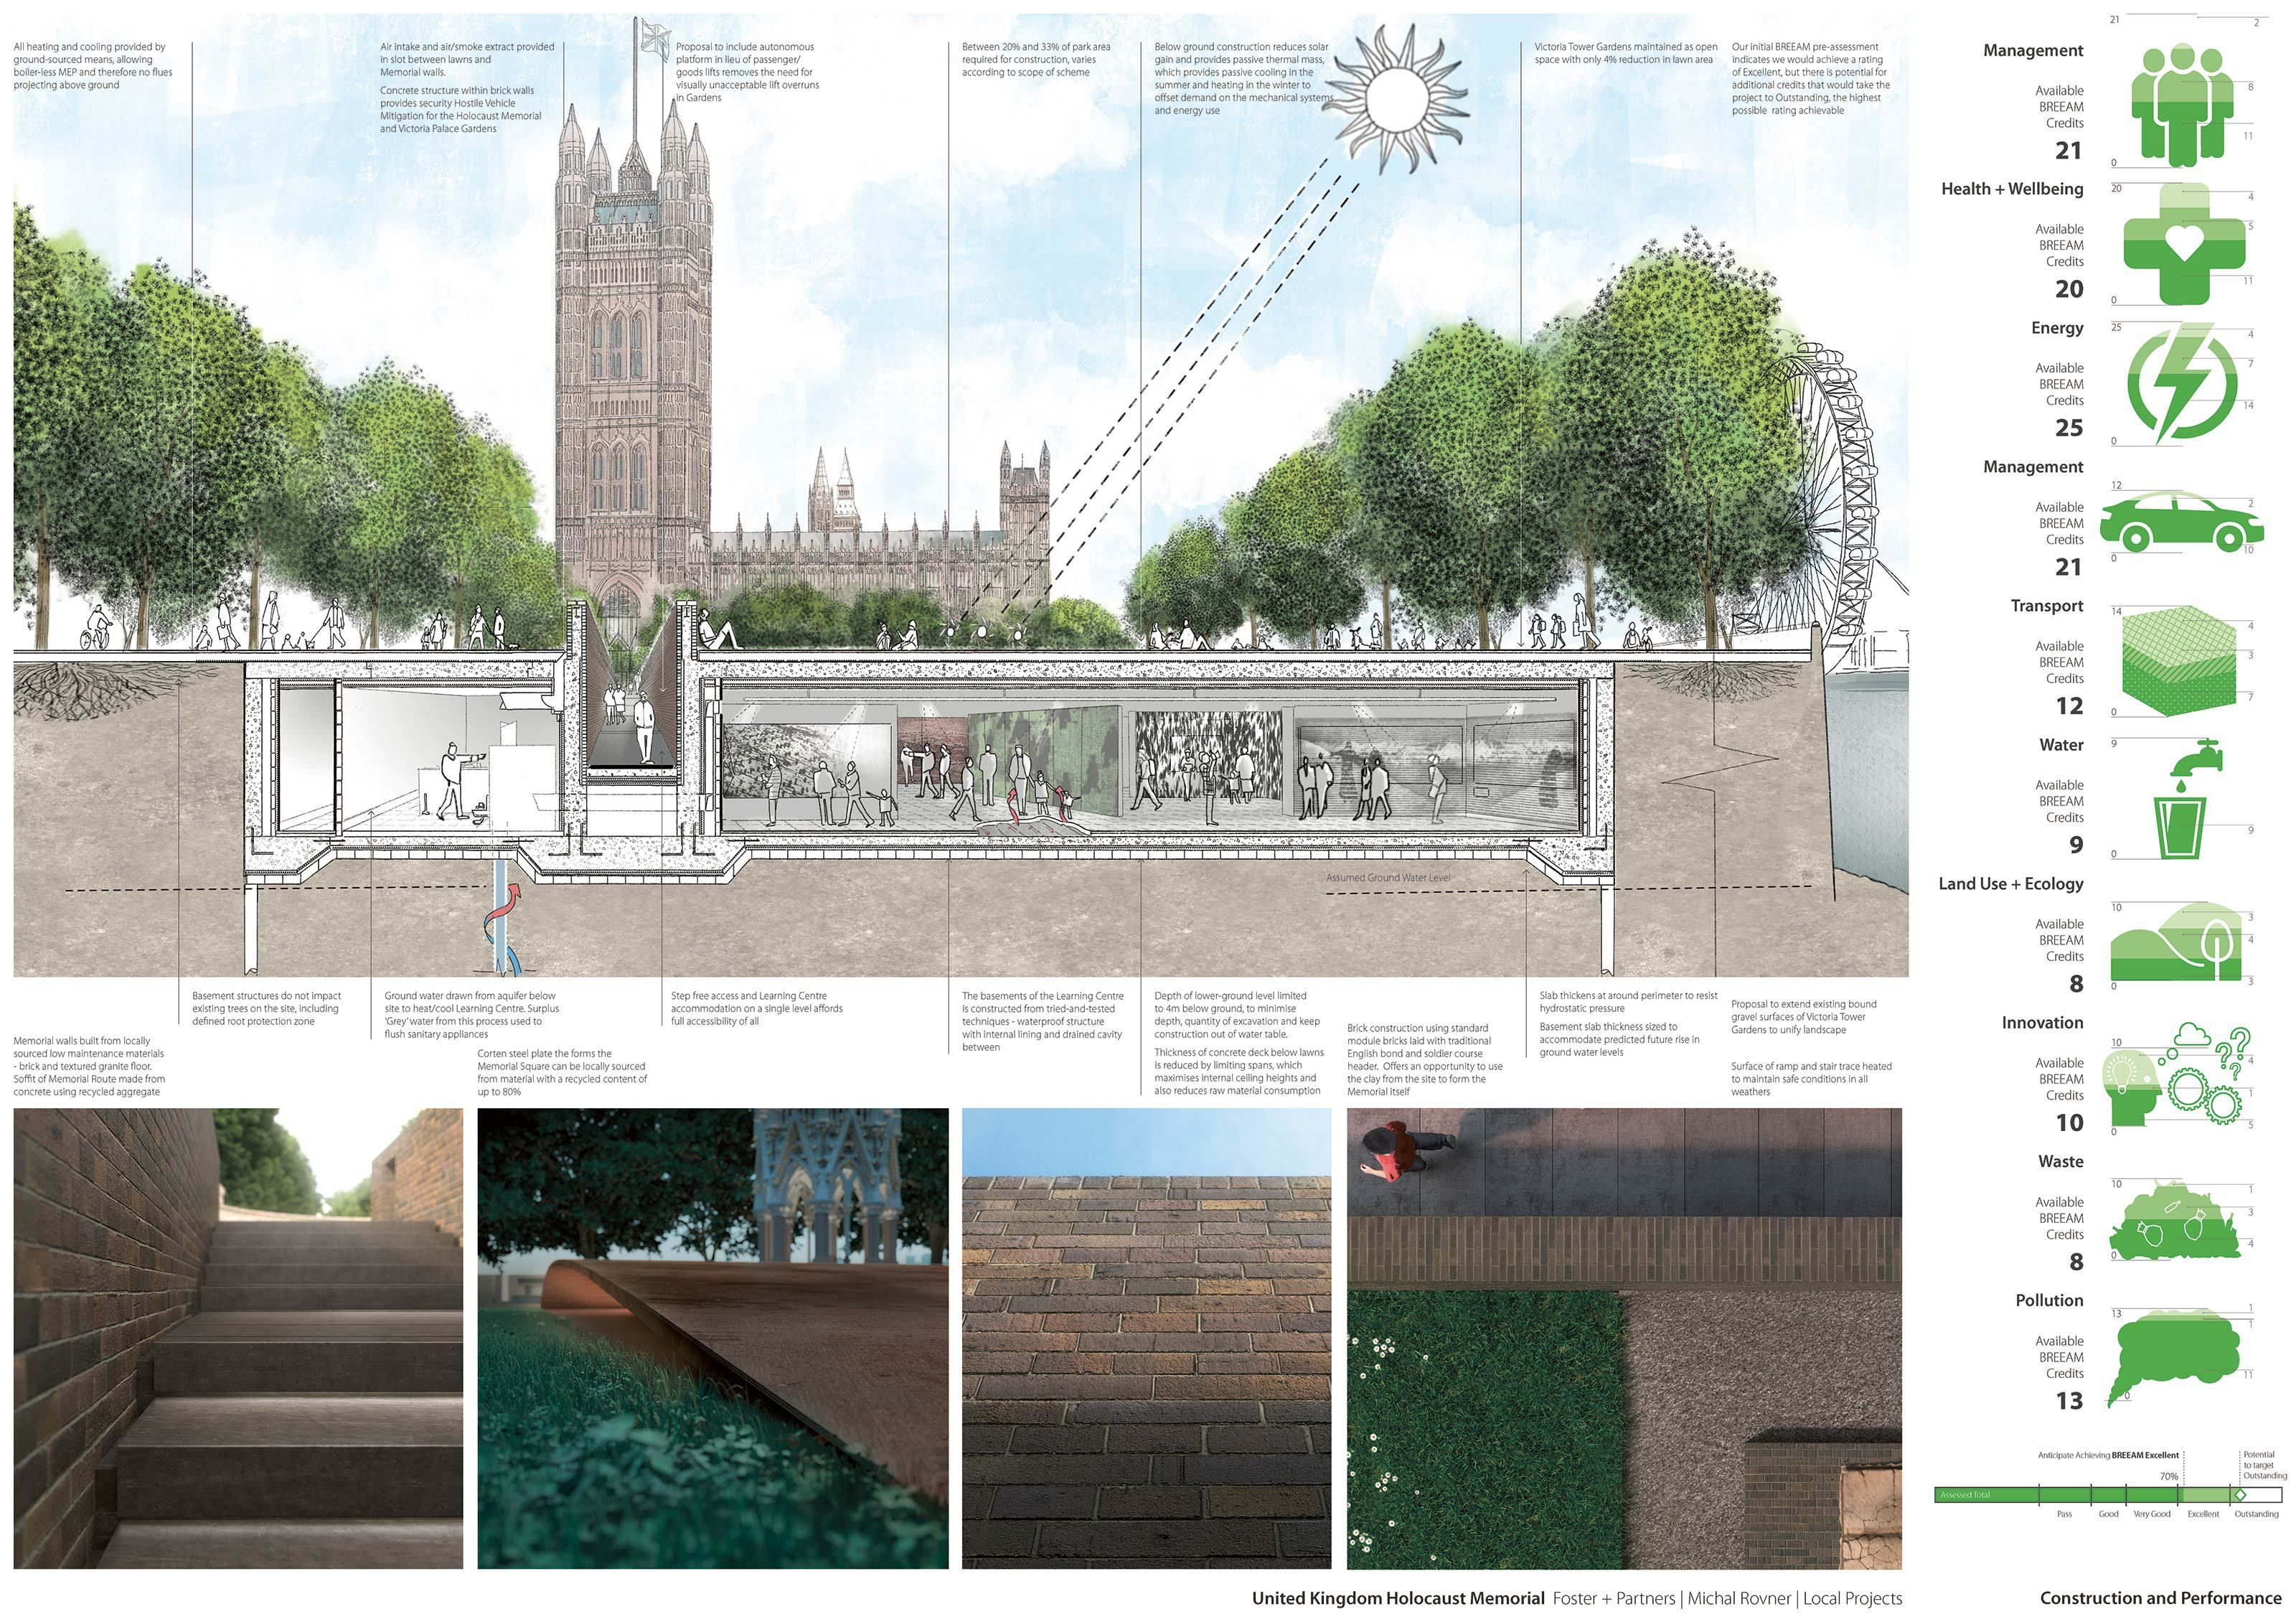 Foster + Partners And Michal Rovner U2014 UK Holocaust Memorial International Design  Competition